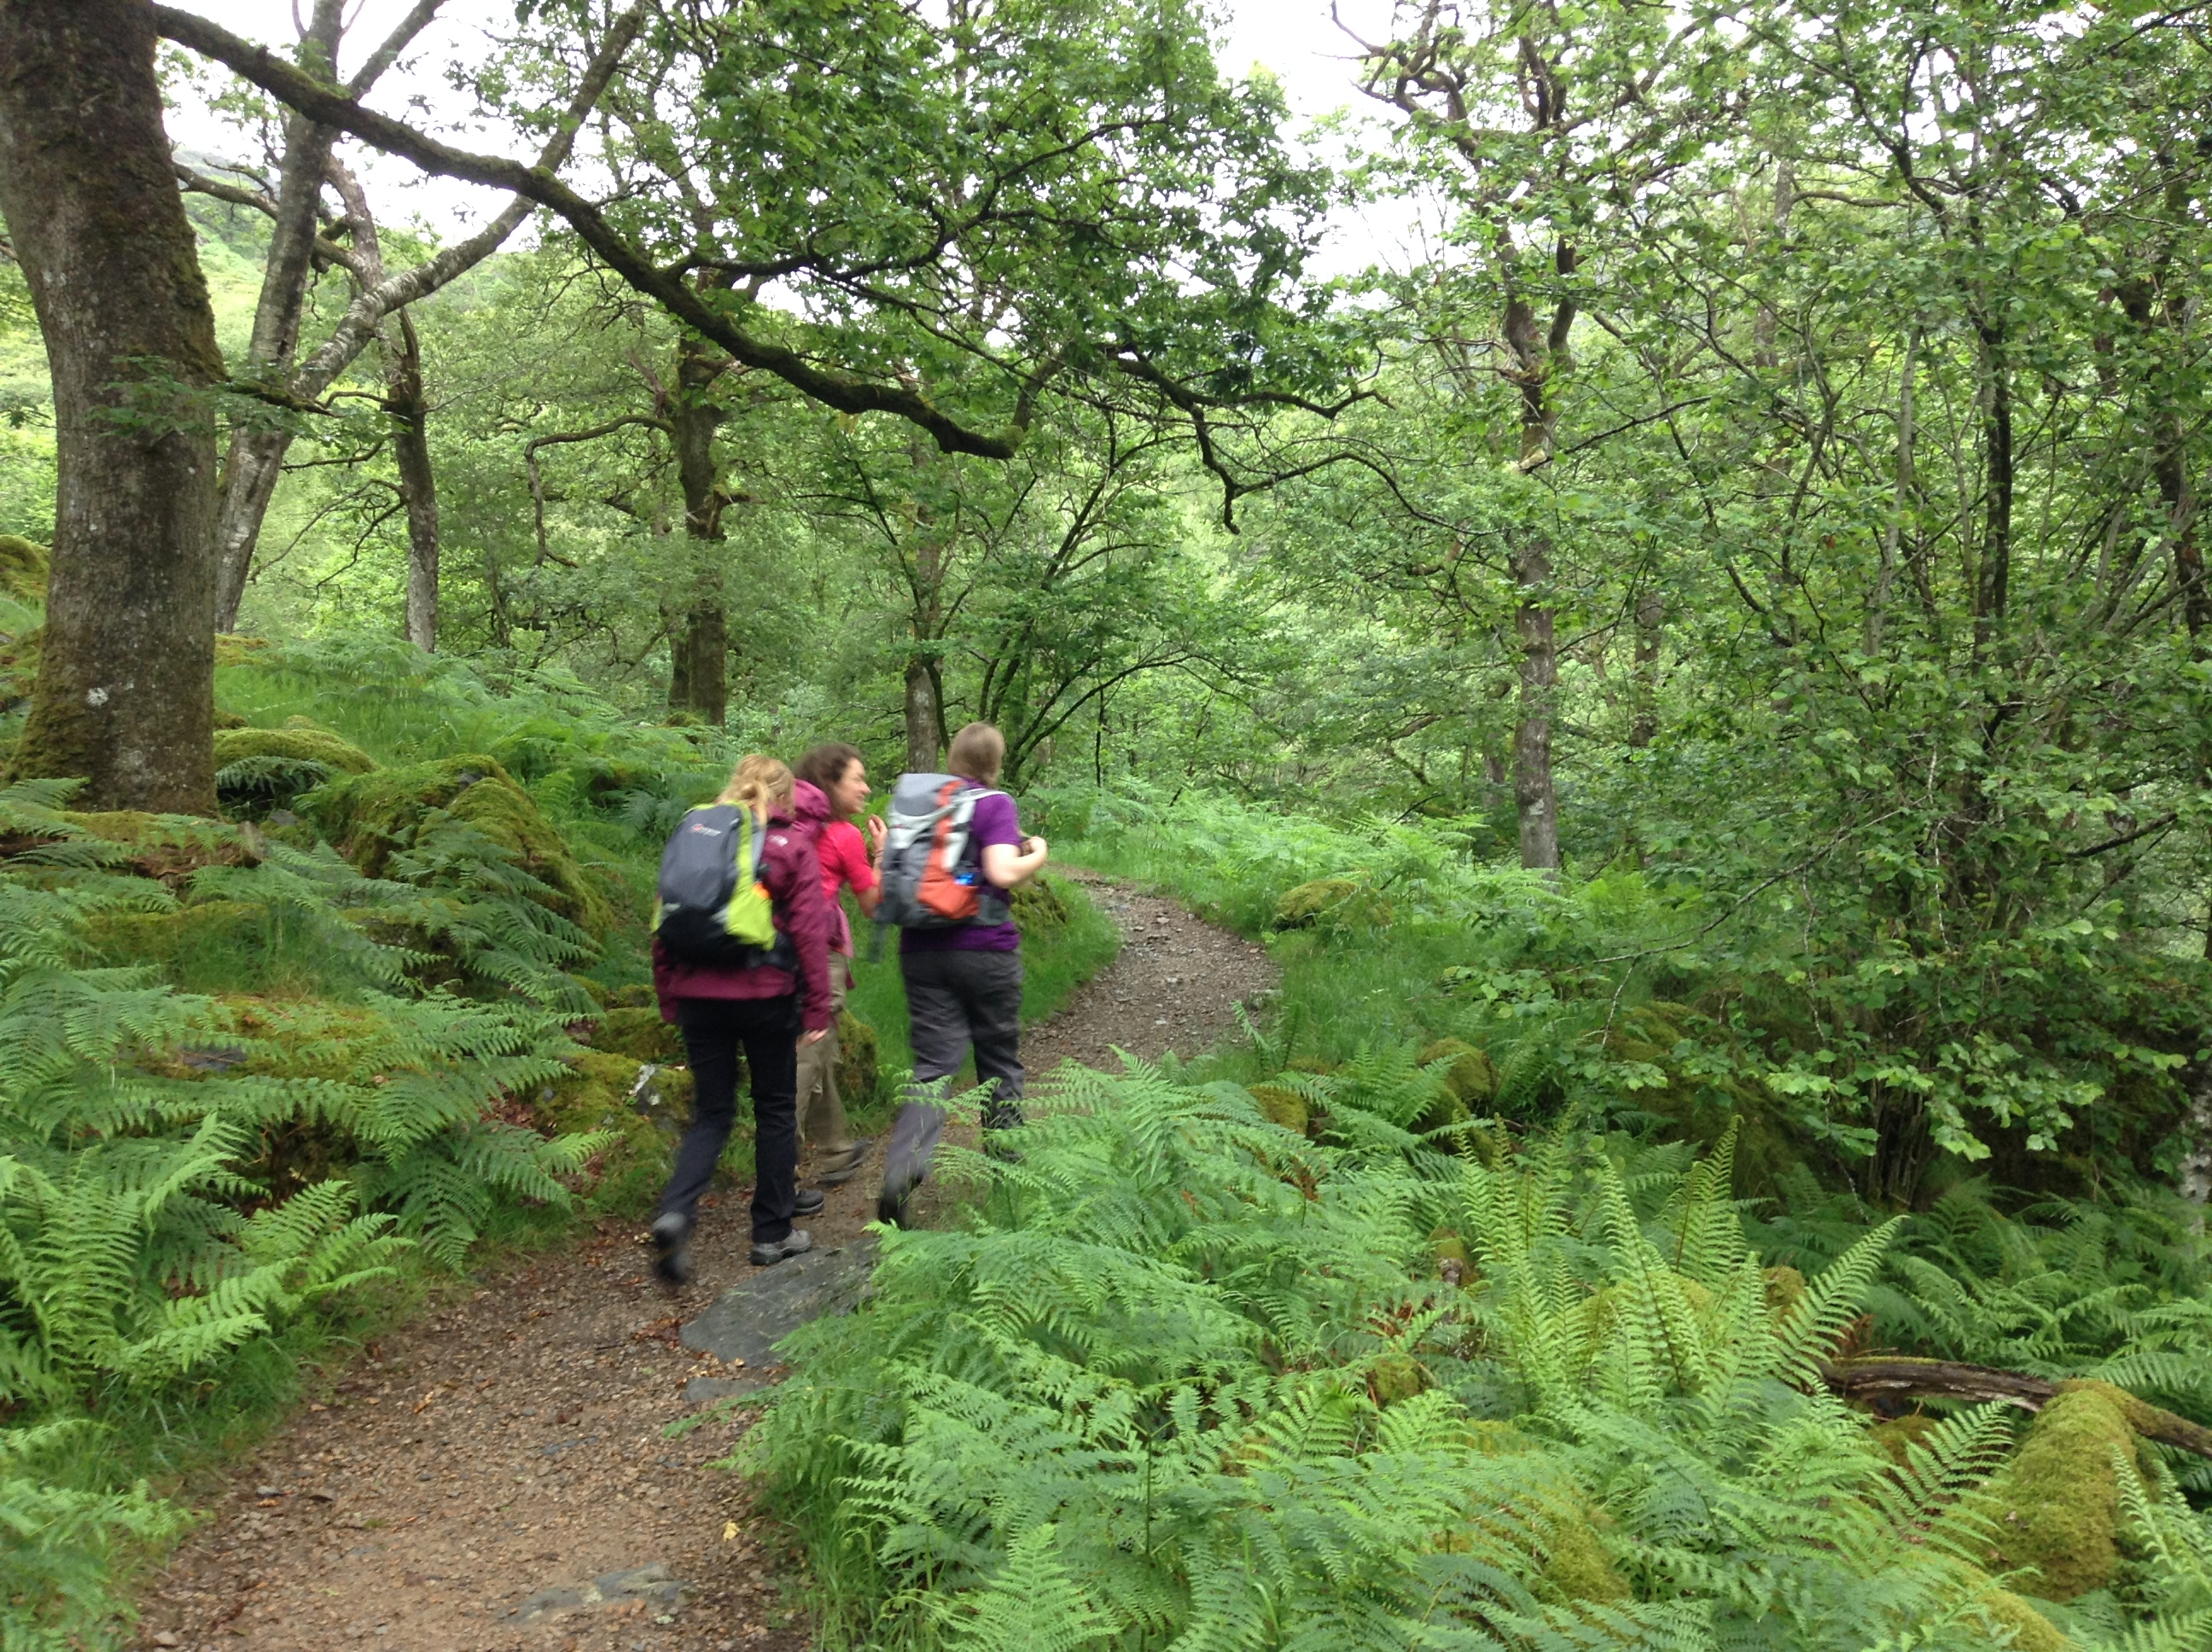 Woods at the start of the Watkin path